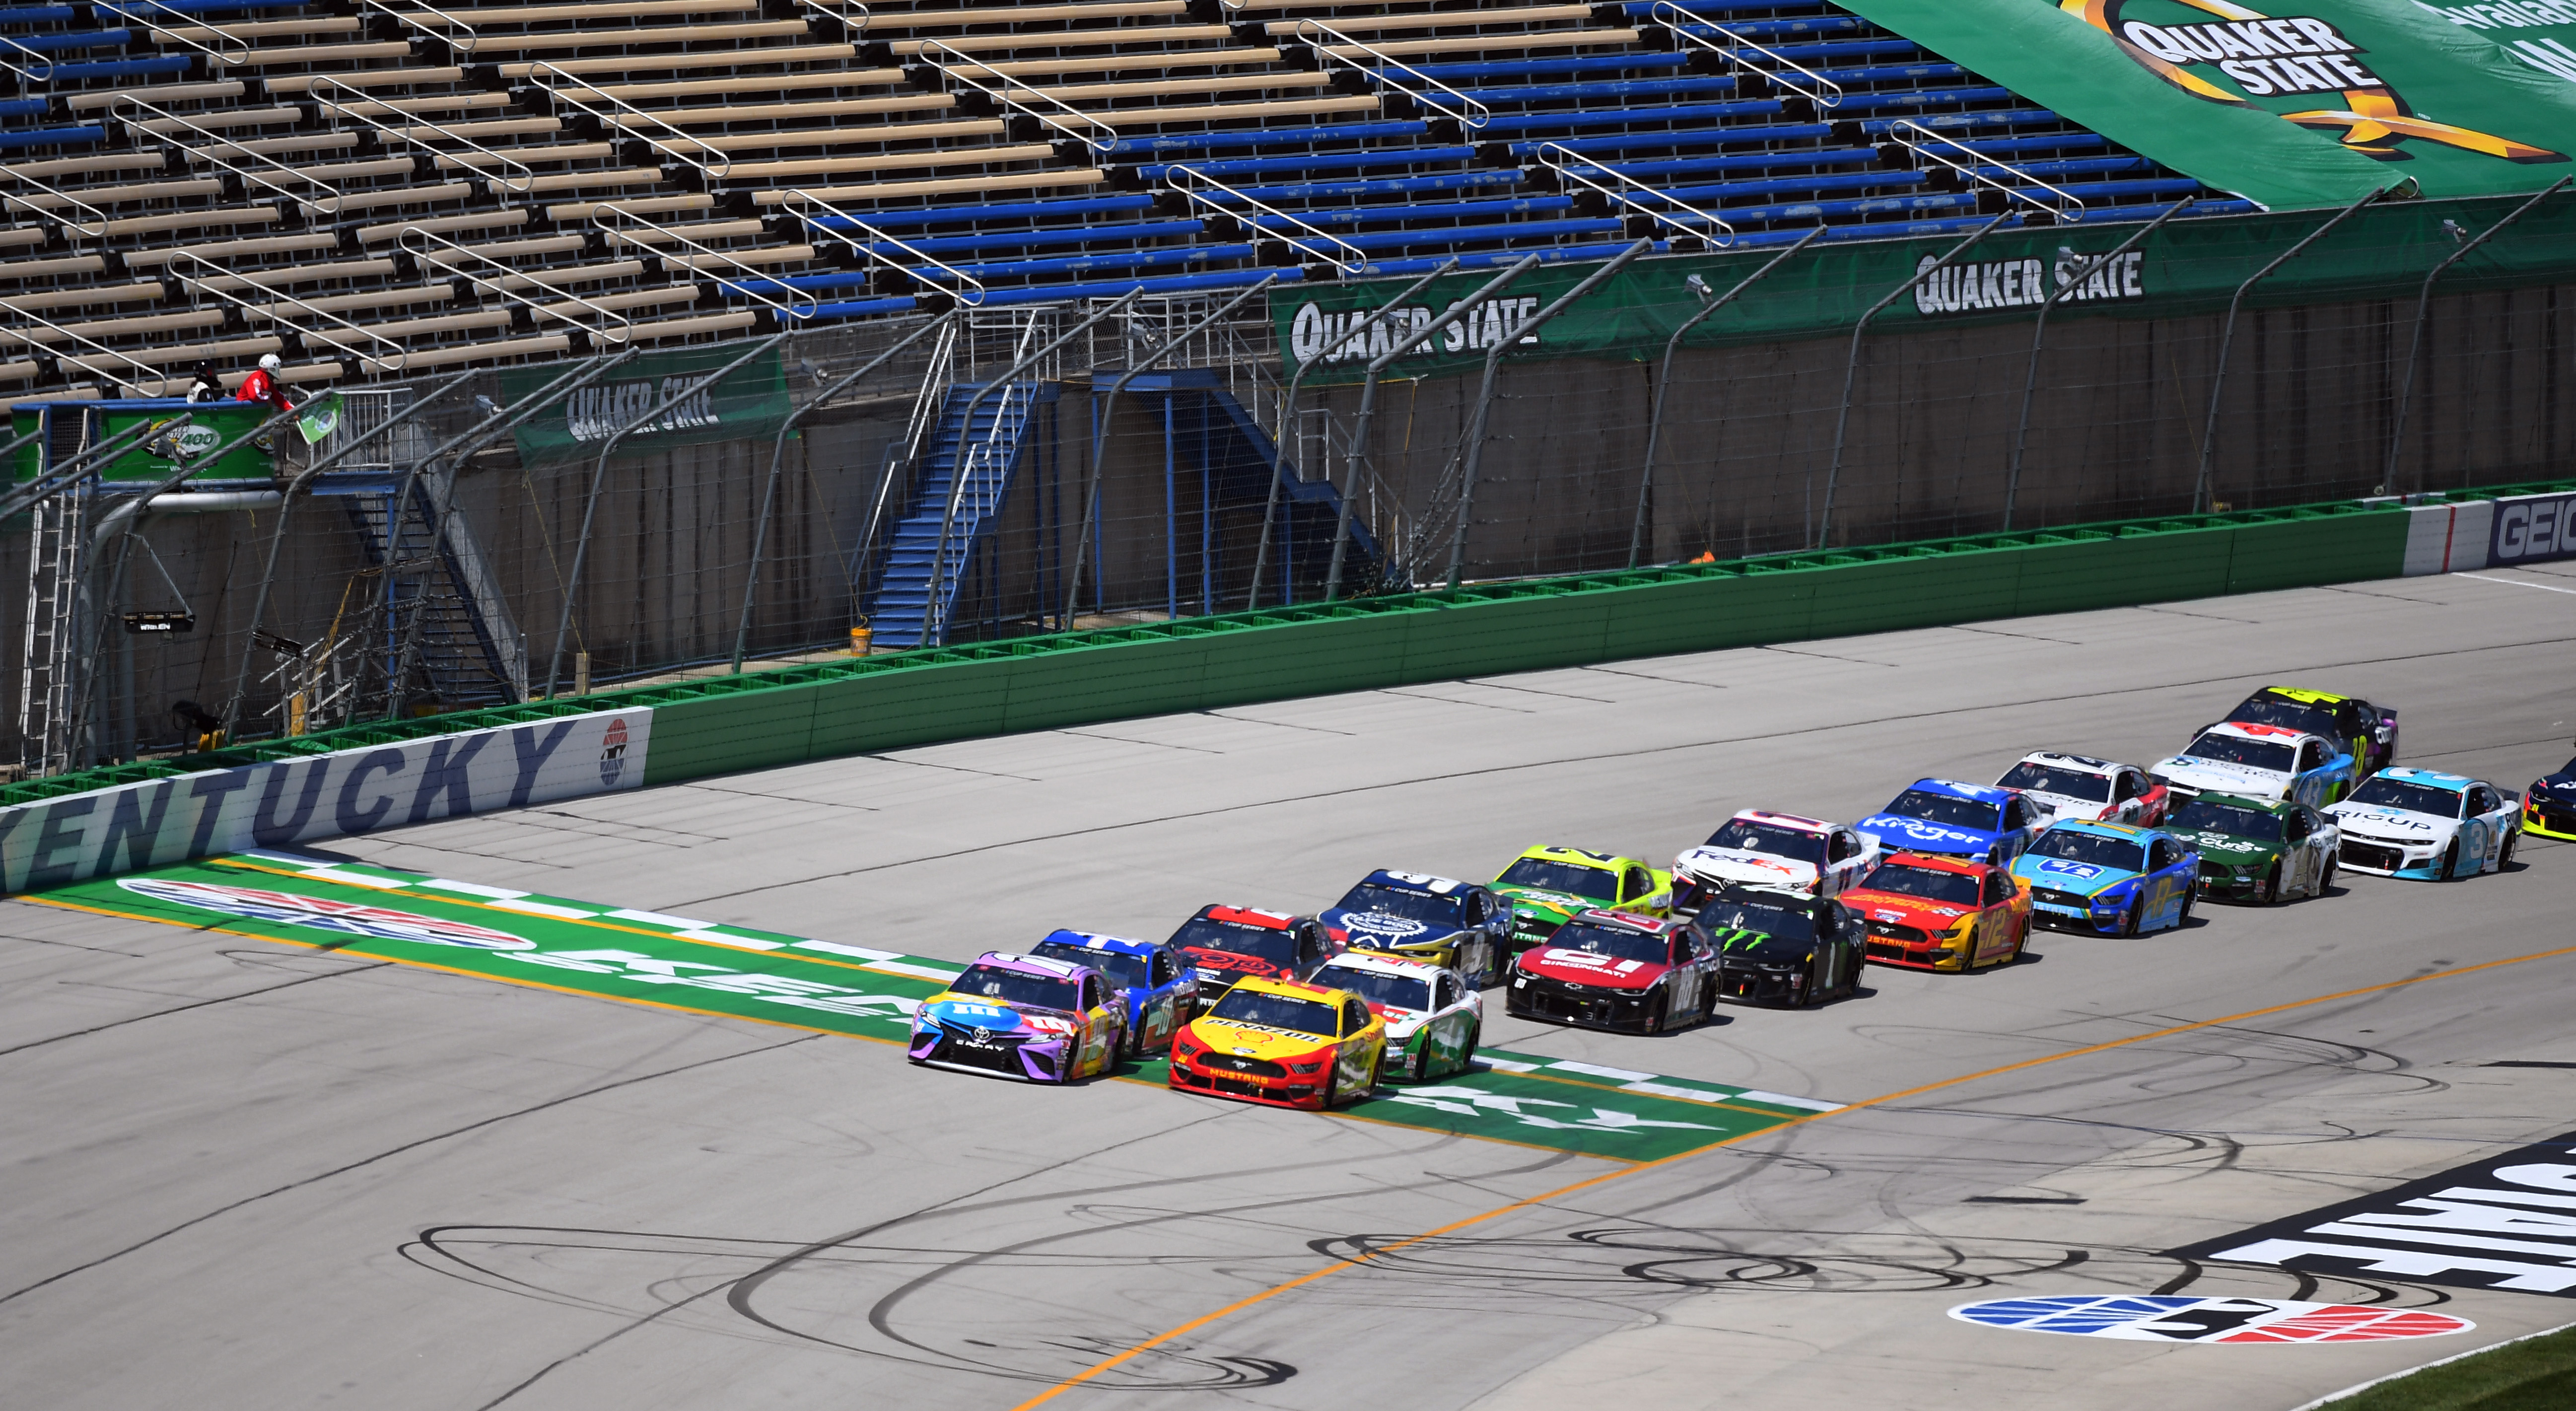 Monster Energy NASCAR Cup Series driver Kyle Busch and Monster Energy NASCAR Cup Series driver Joey Logano lead the field across the start finish line during the Quaker State 400 at Kentucky Speedway.